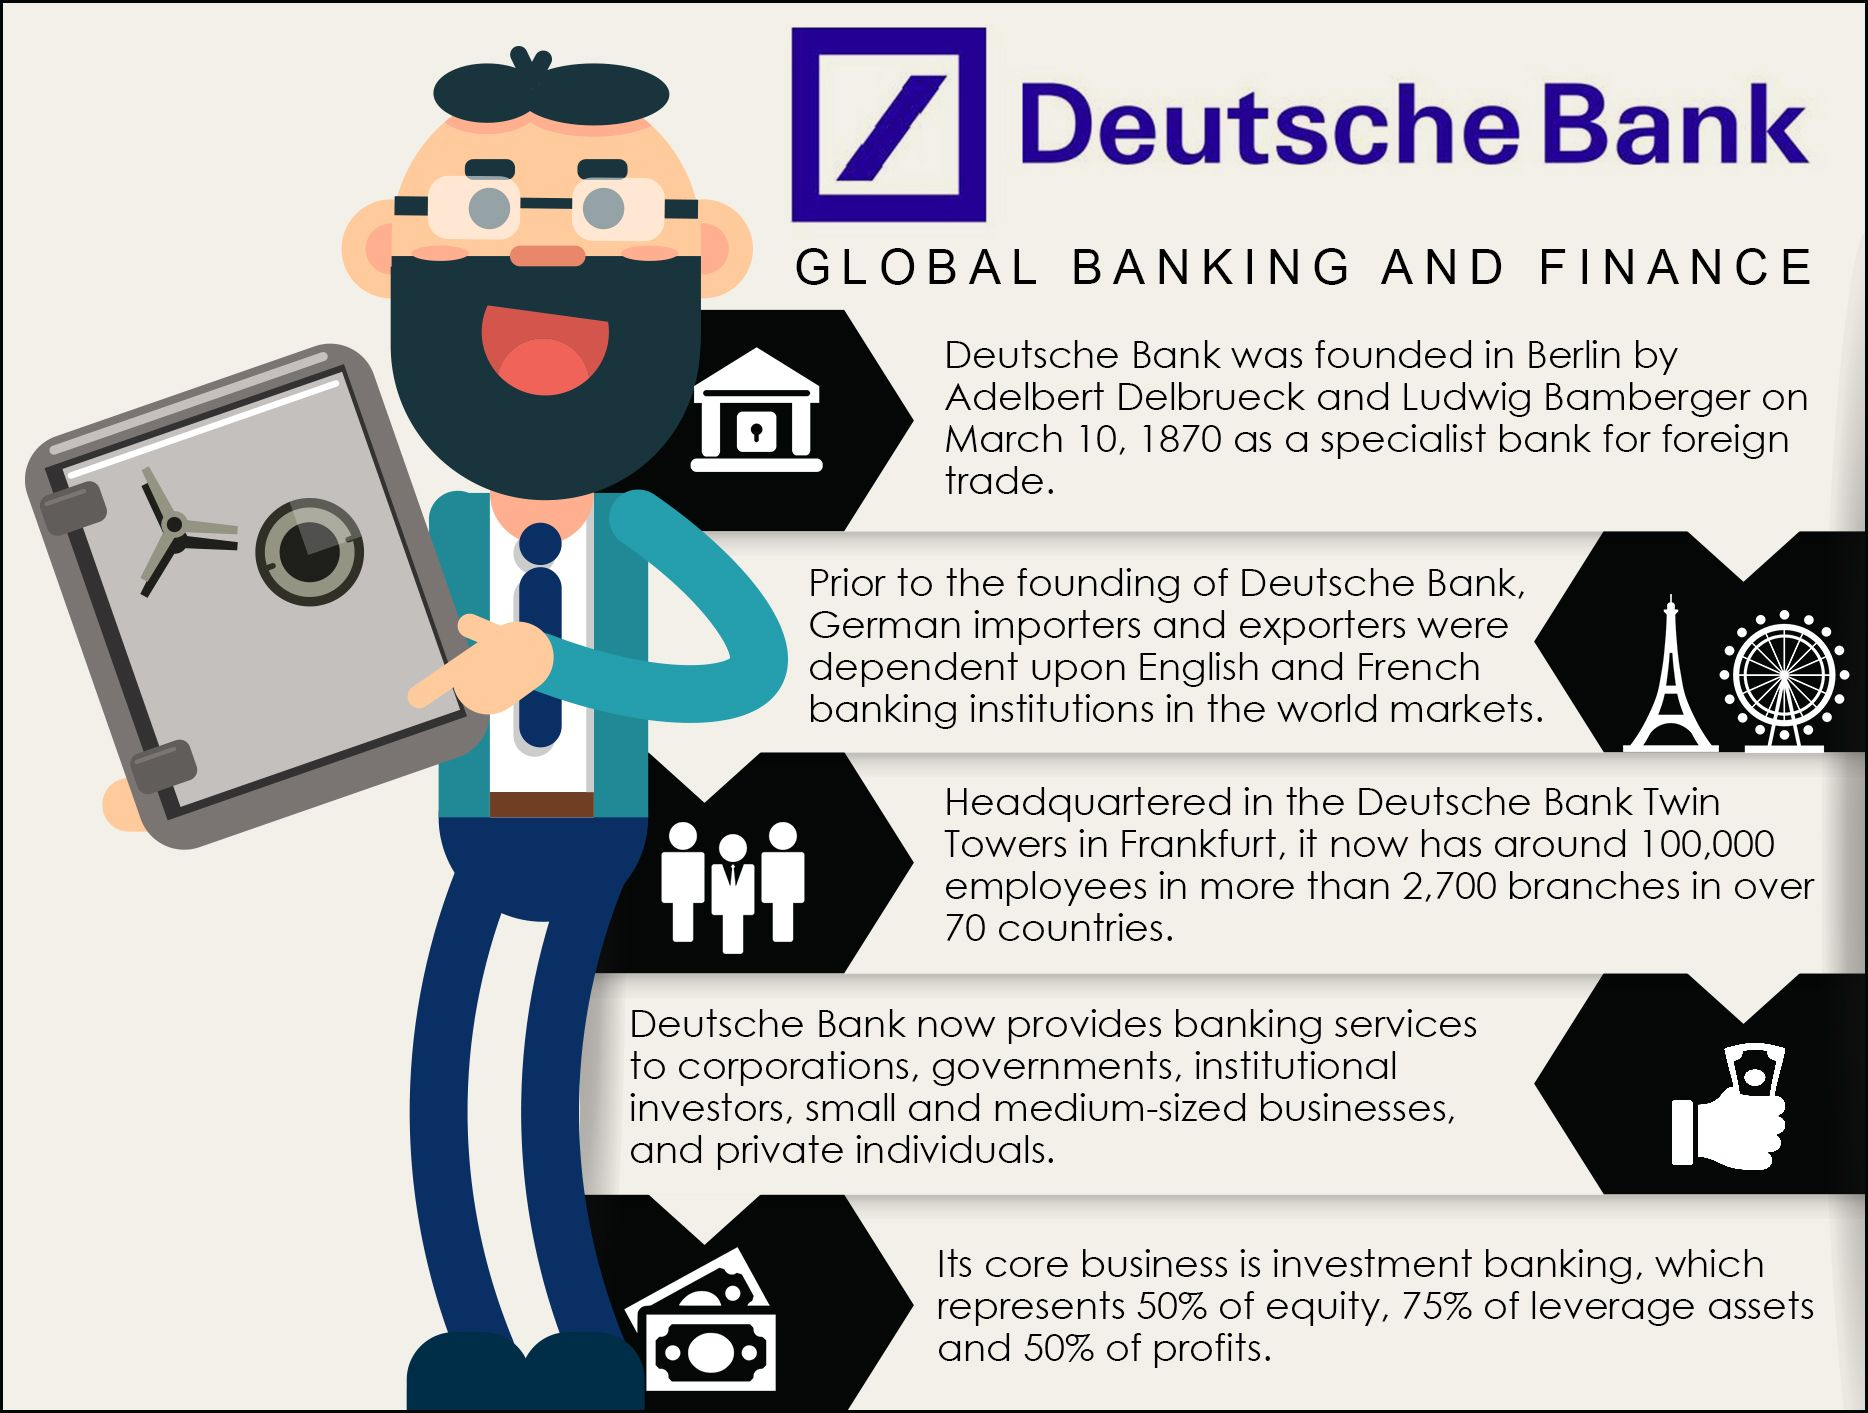 Deutsche Bank Global Banking and Finance Deutsche Bank